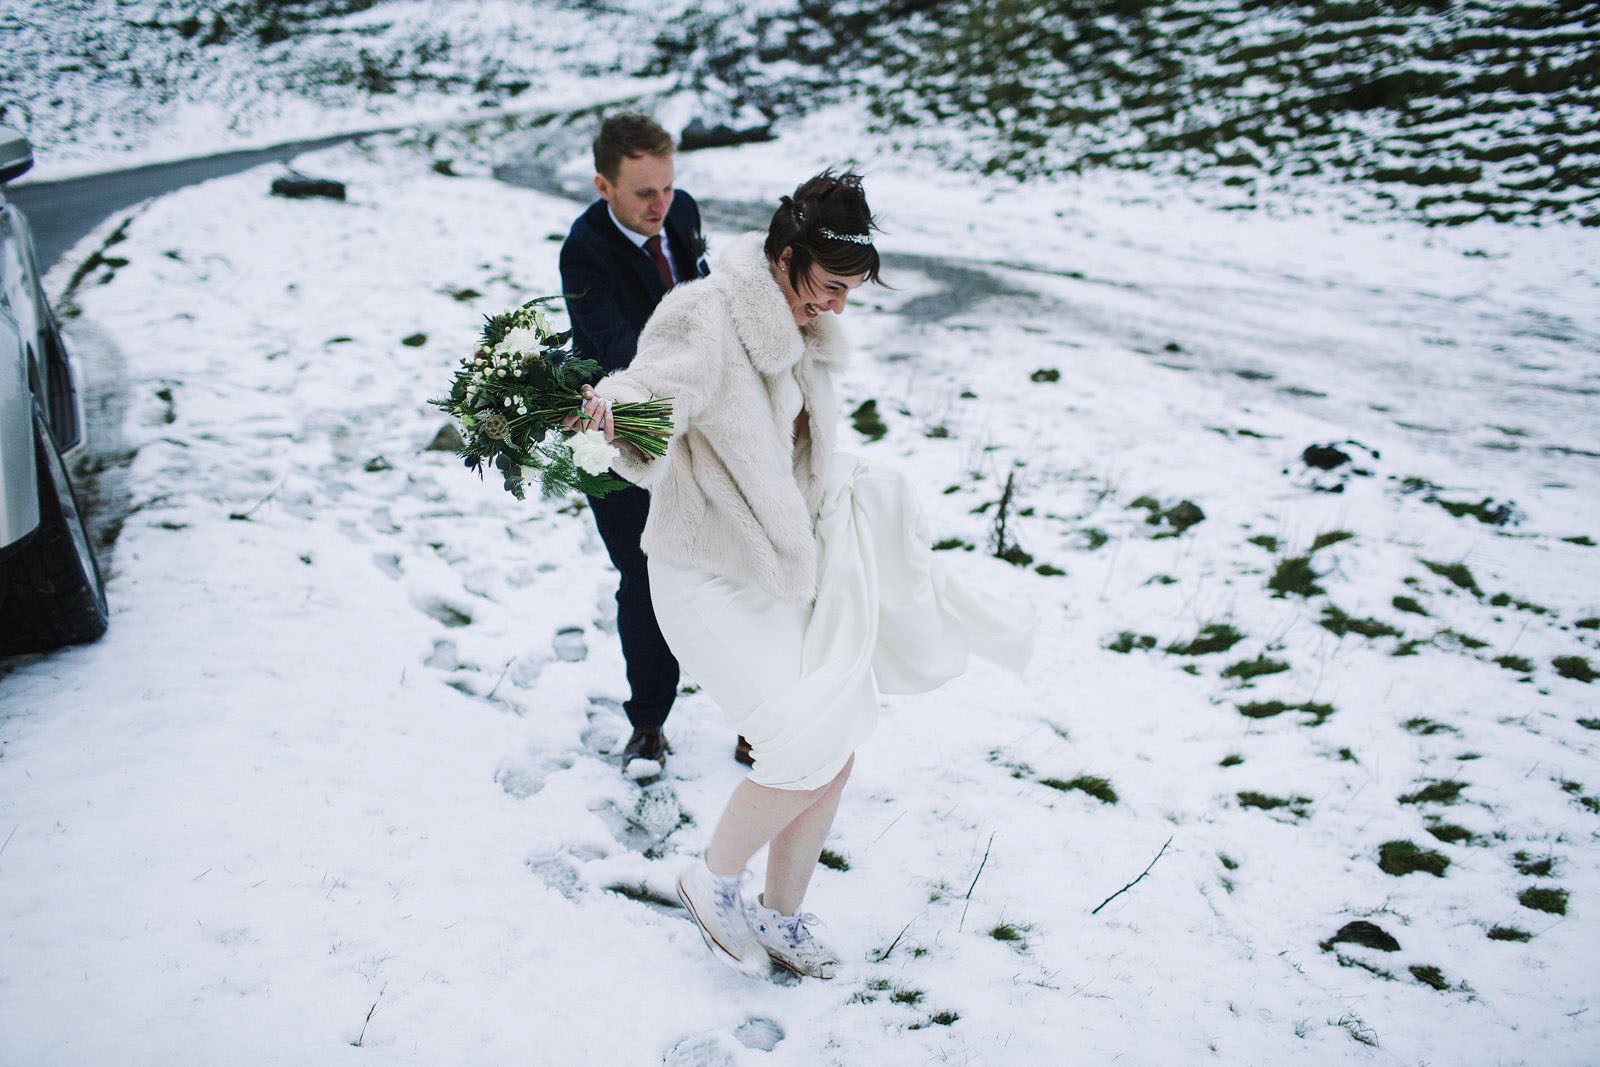 Losehill House Peak District winter wedding